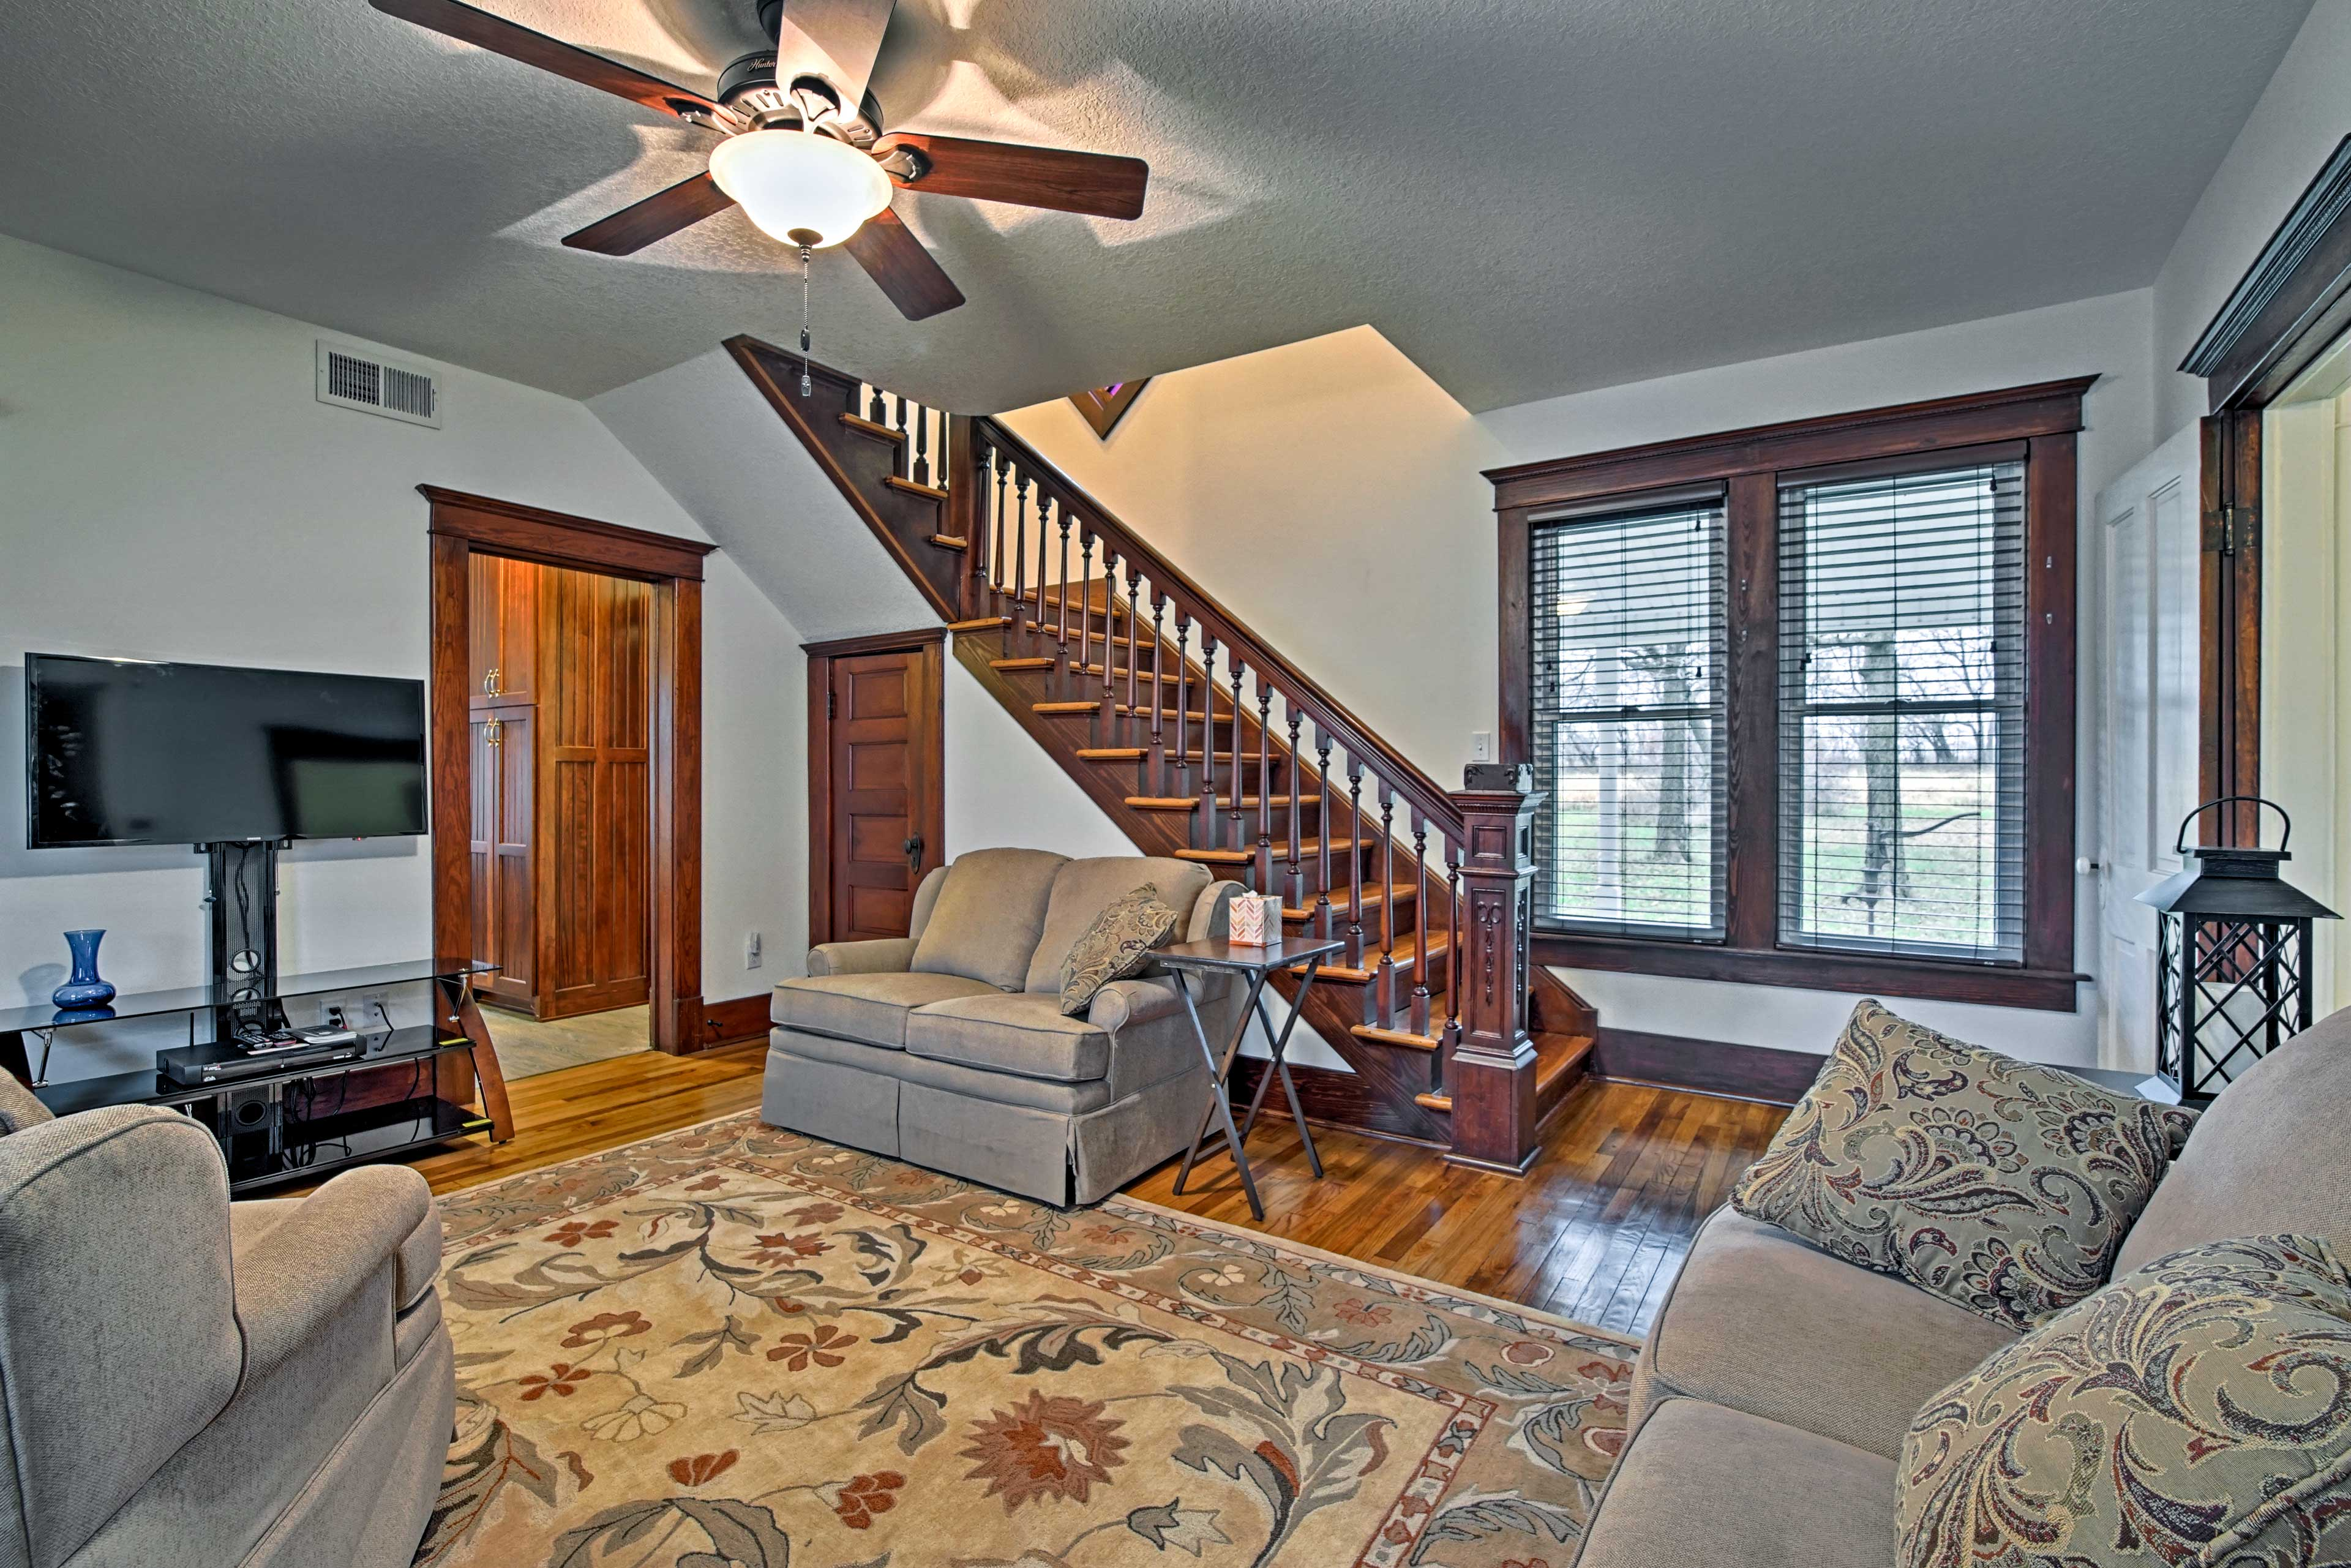 Up to 4 guests can relax comfortably in this 2-bedroom, 2-bathroom house.